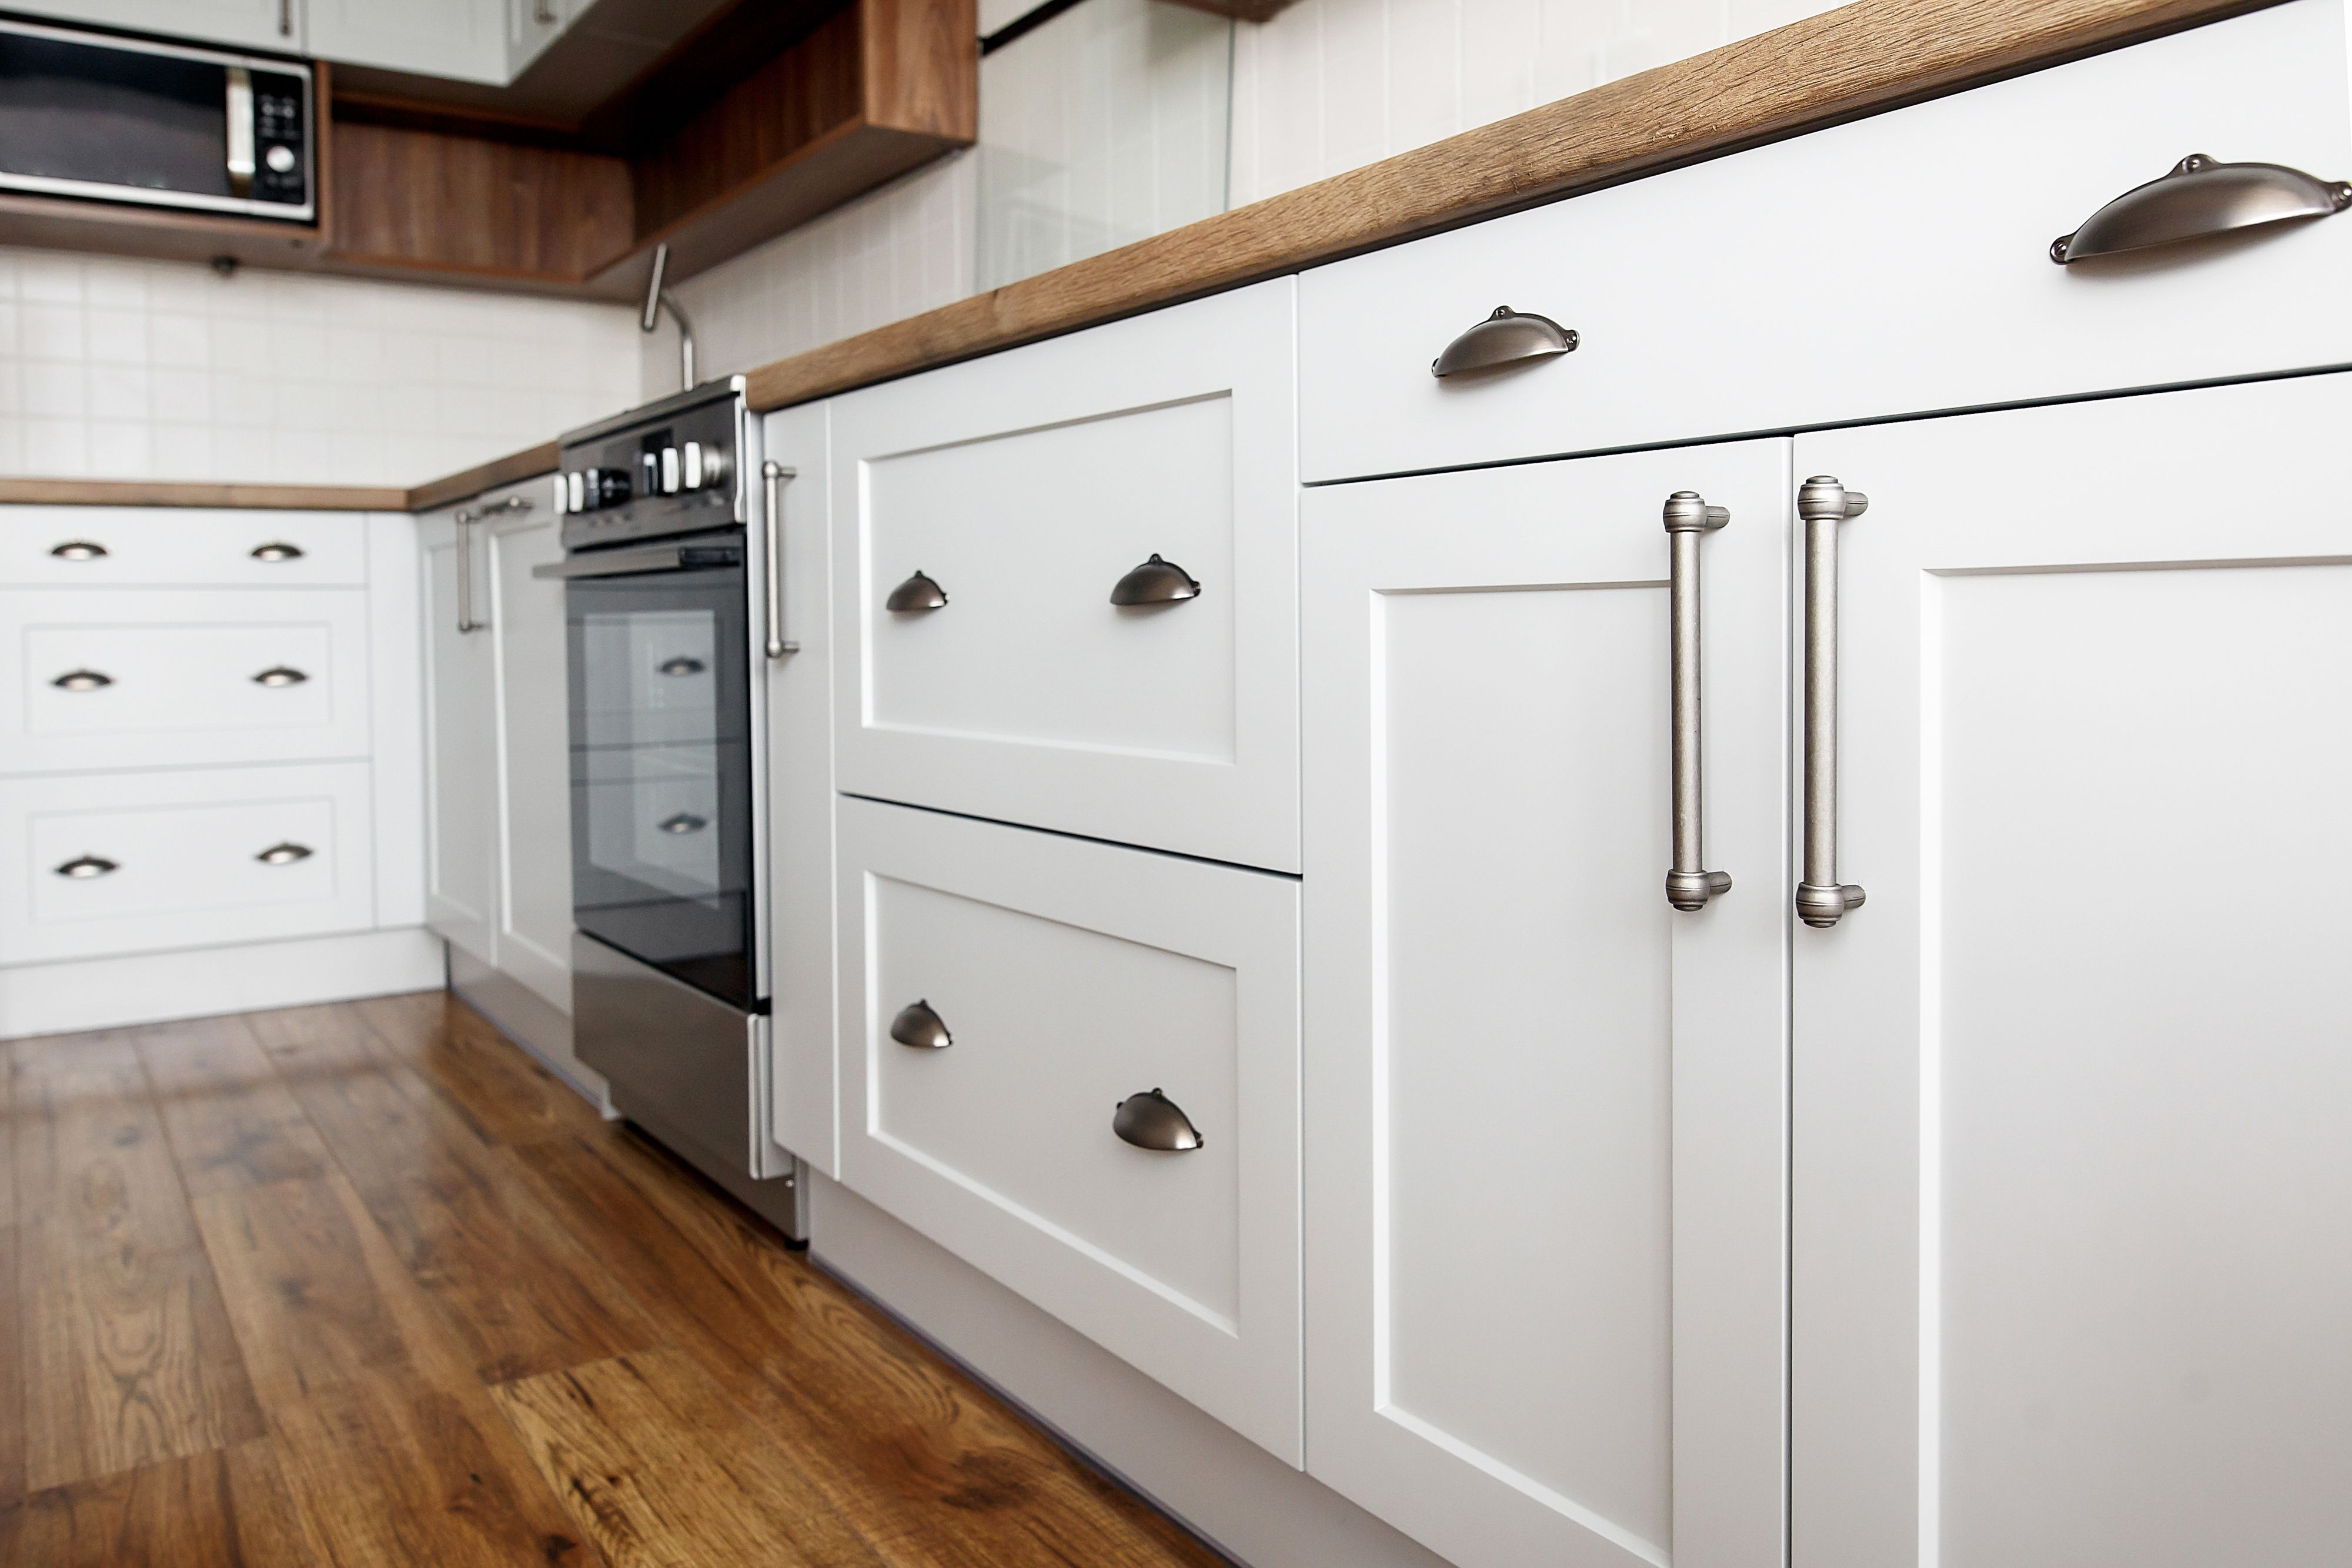 Fantastic Free Of Charge The Best Way To Clean Painted Kitchen Cabinets Hunker Types Of Kitchen Cabinets Kitchen Cabinet Door Styles Update Kitchen Cabinets